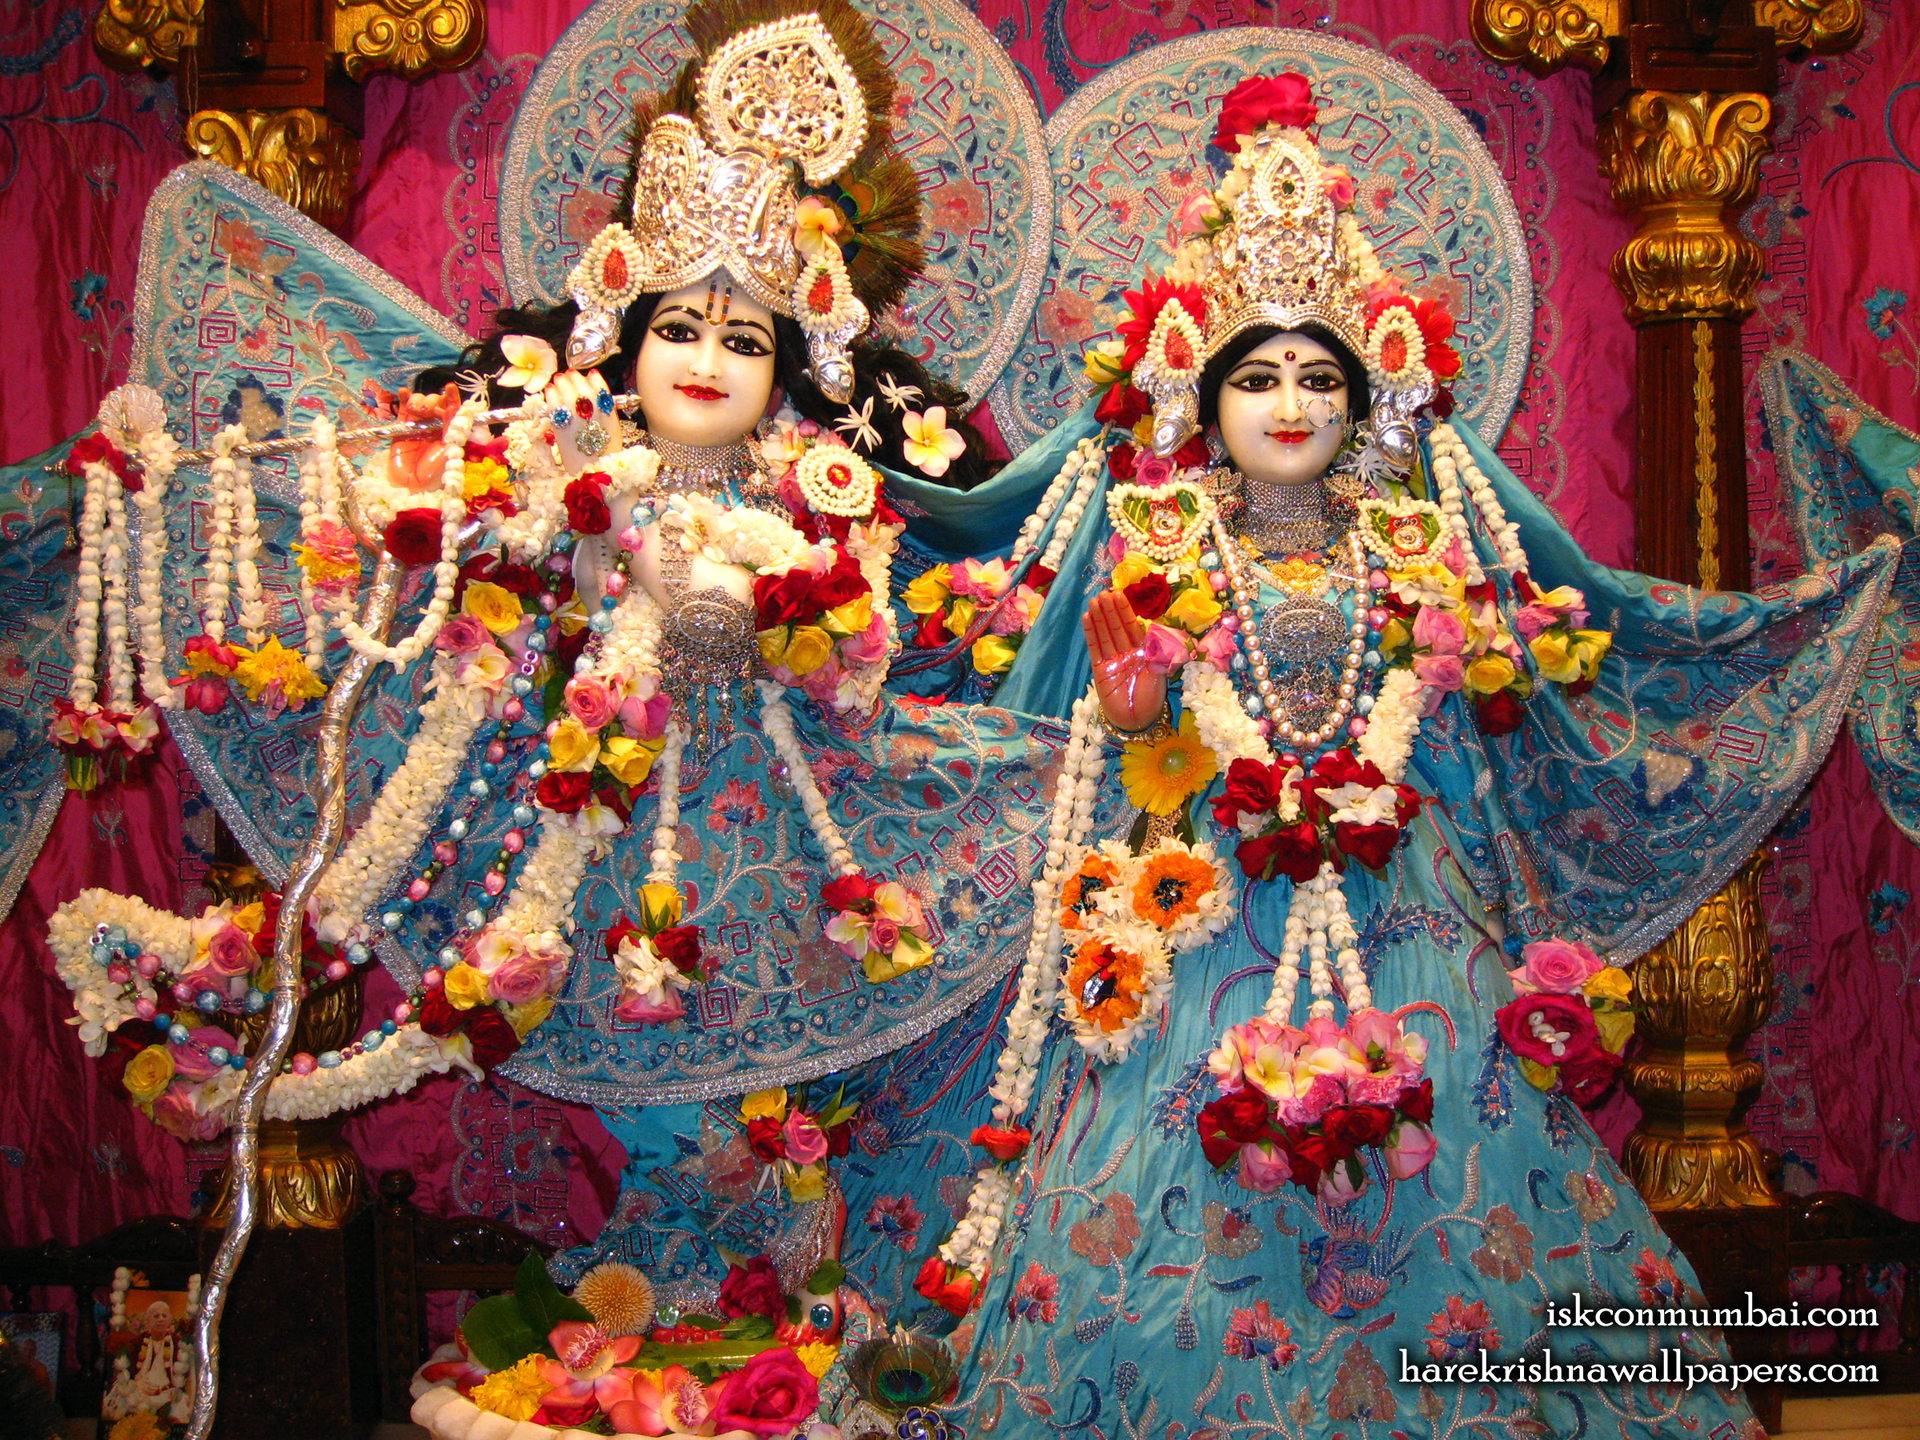 Sri Sri Radha Rasabihari Wallpaper (004) Size 1920x1440 Download